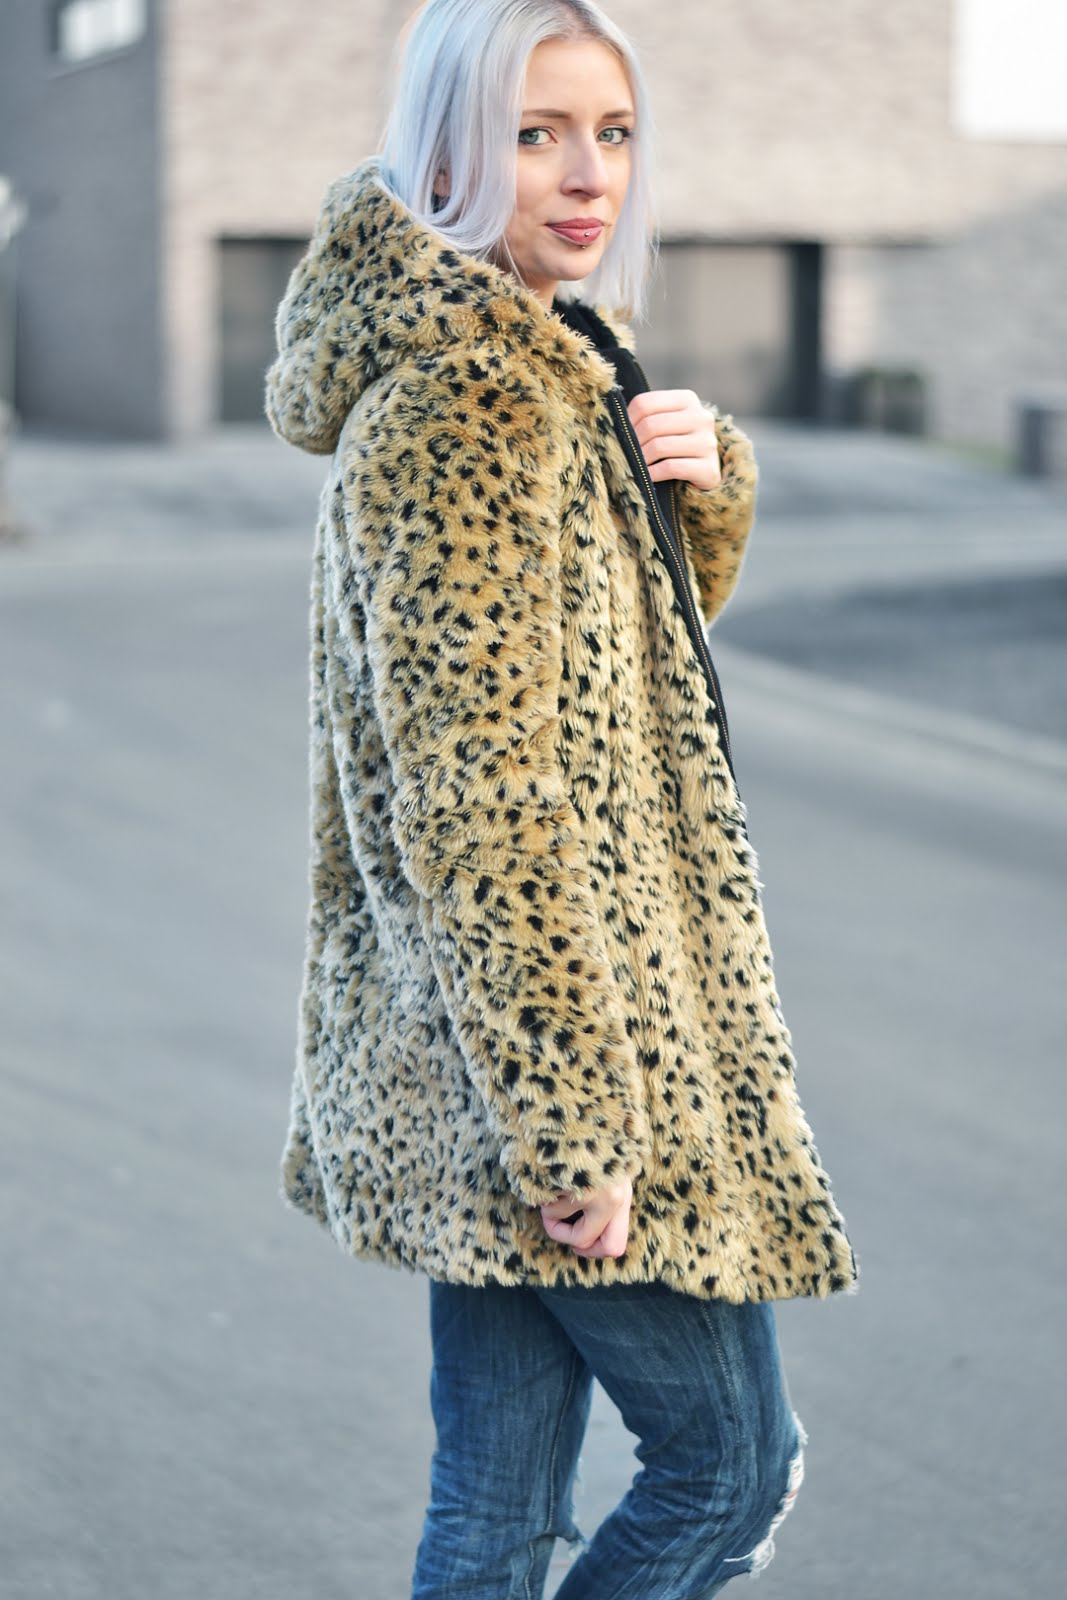 Turn it inside out, ootd, leopard coat, faux fur, ripped denim, primark, boyfriend jeans, cos shoes, white sole, wool jumper, casual, fashion blogger, belgian mode blogger, belgische